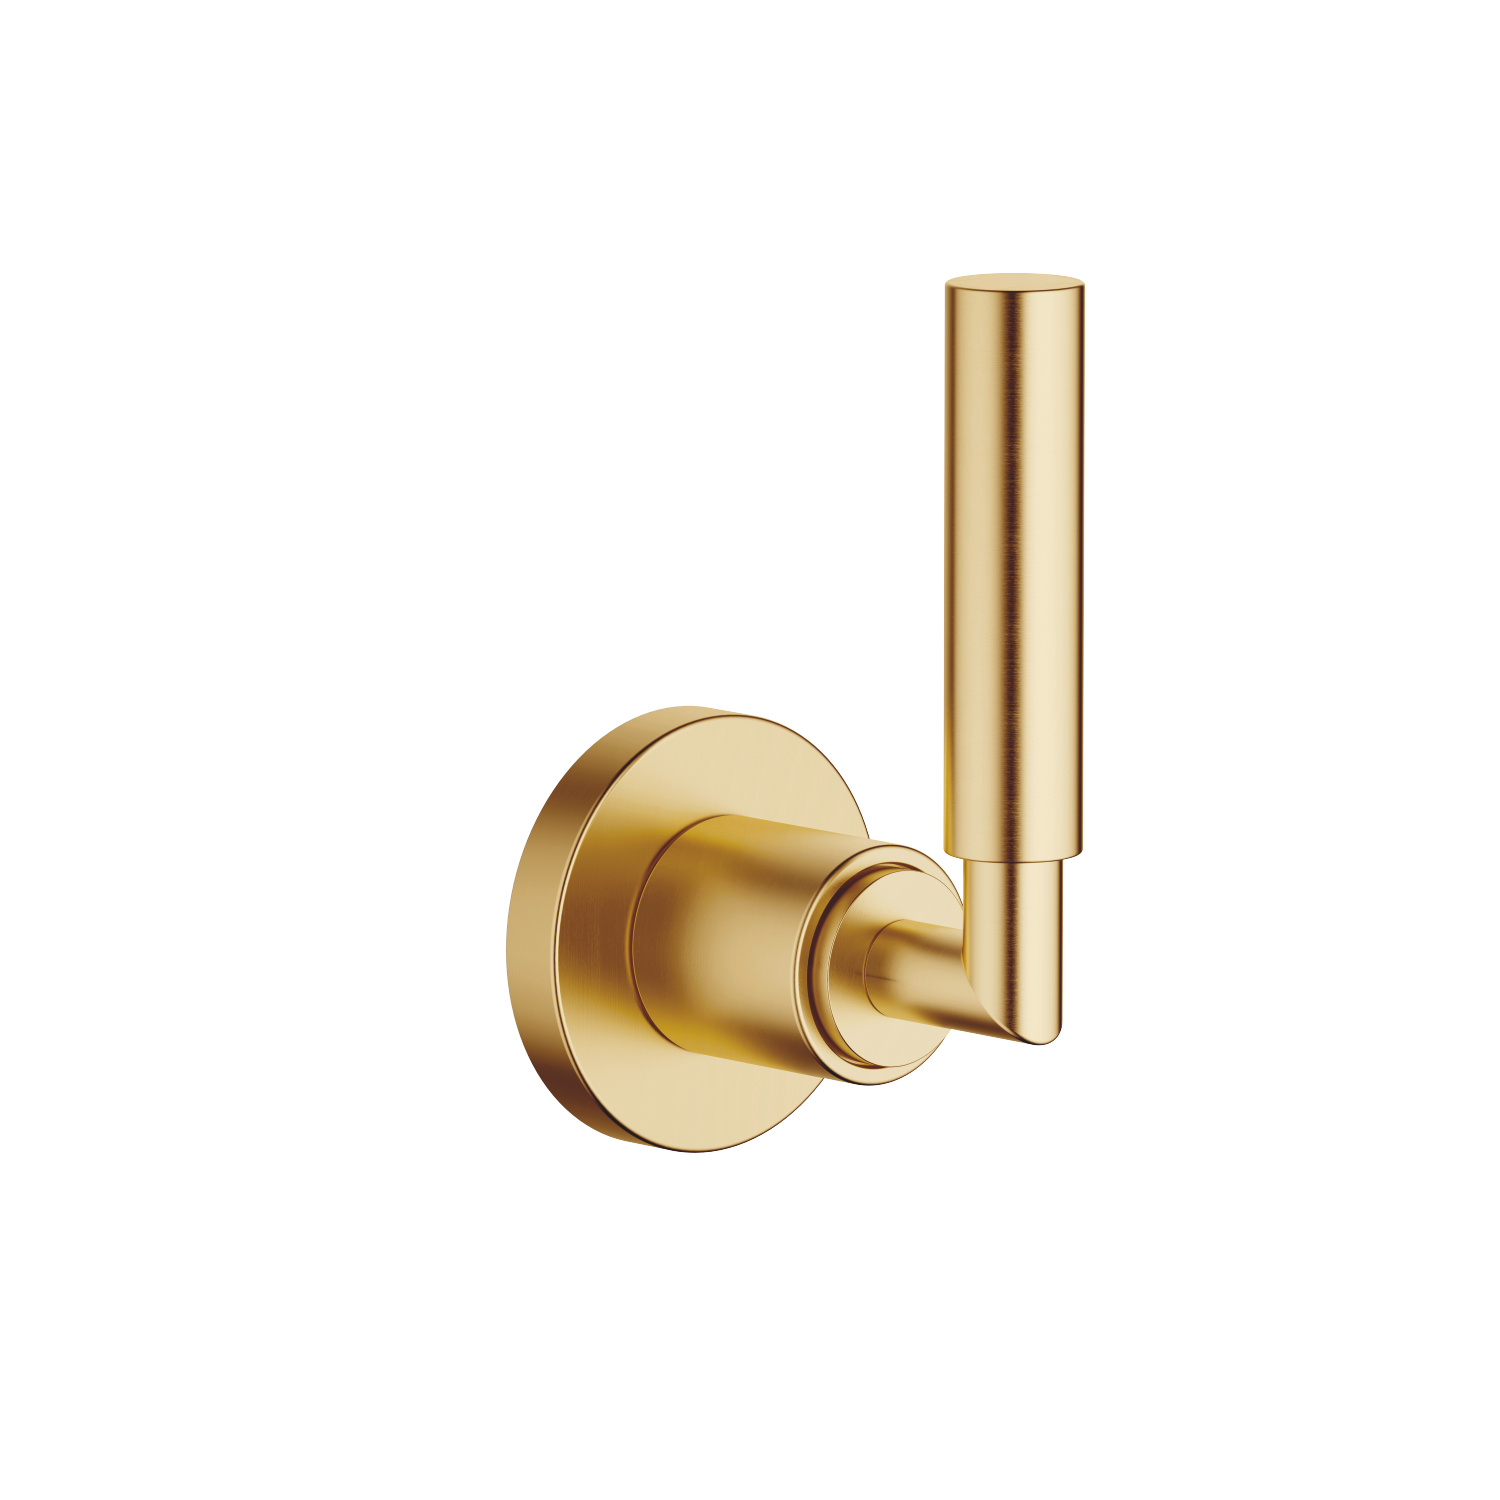 "Volume Control clockwise-closing 1/2"" - Brushed Durabrass"